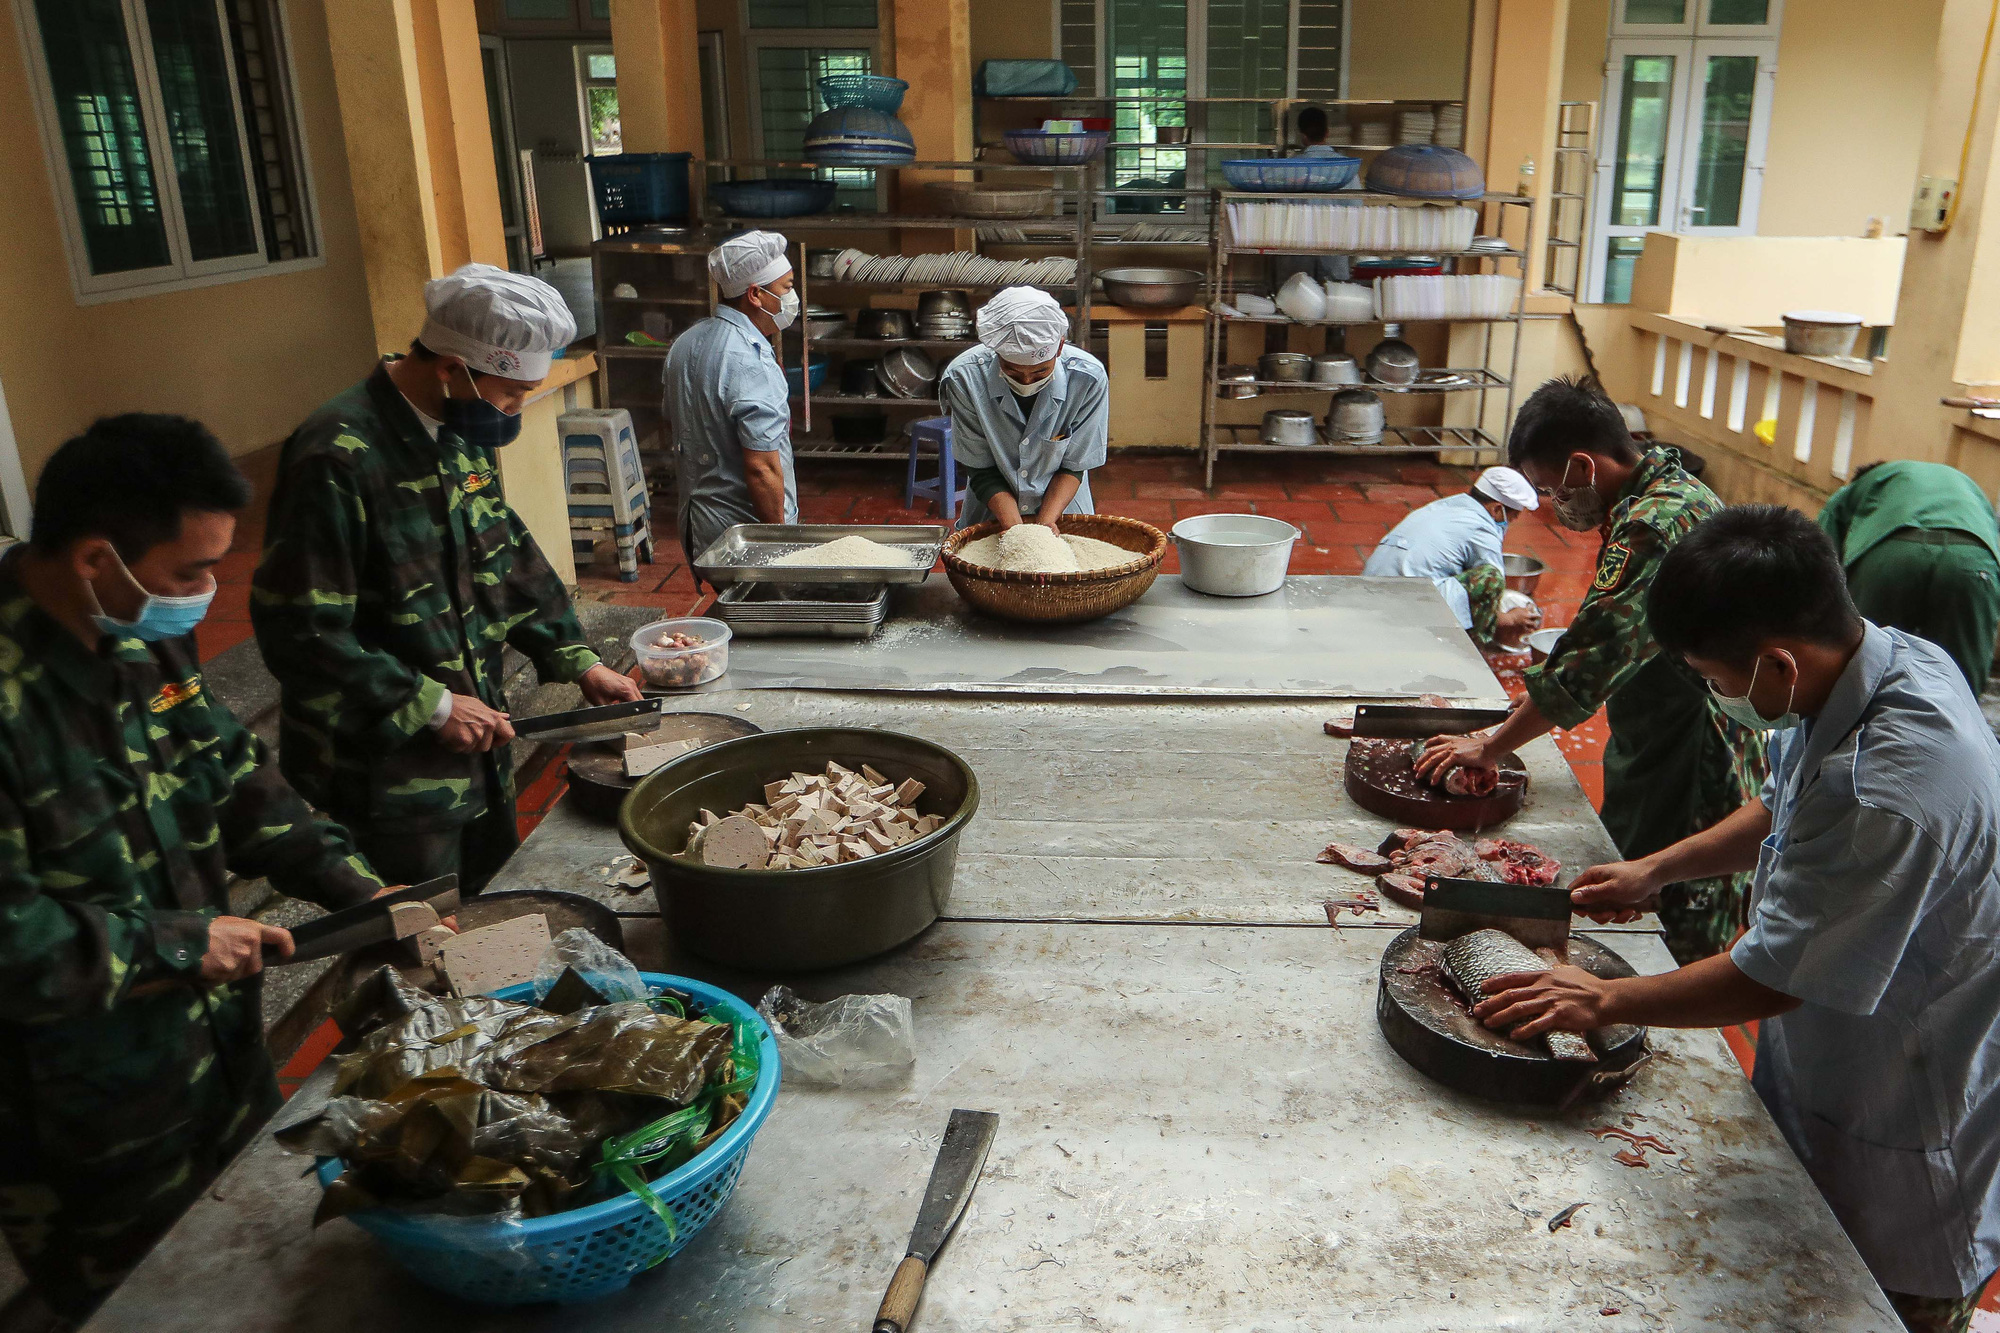 The day's main course served at Lao Cai Military School in northern Vietnam includes braised fish, pork bologna, and vegetables. Photo: Nguyen Khanh / Tuoi Tre